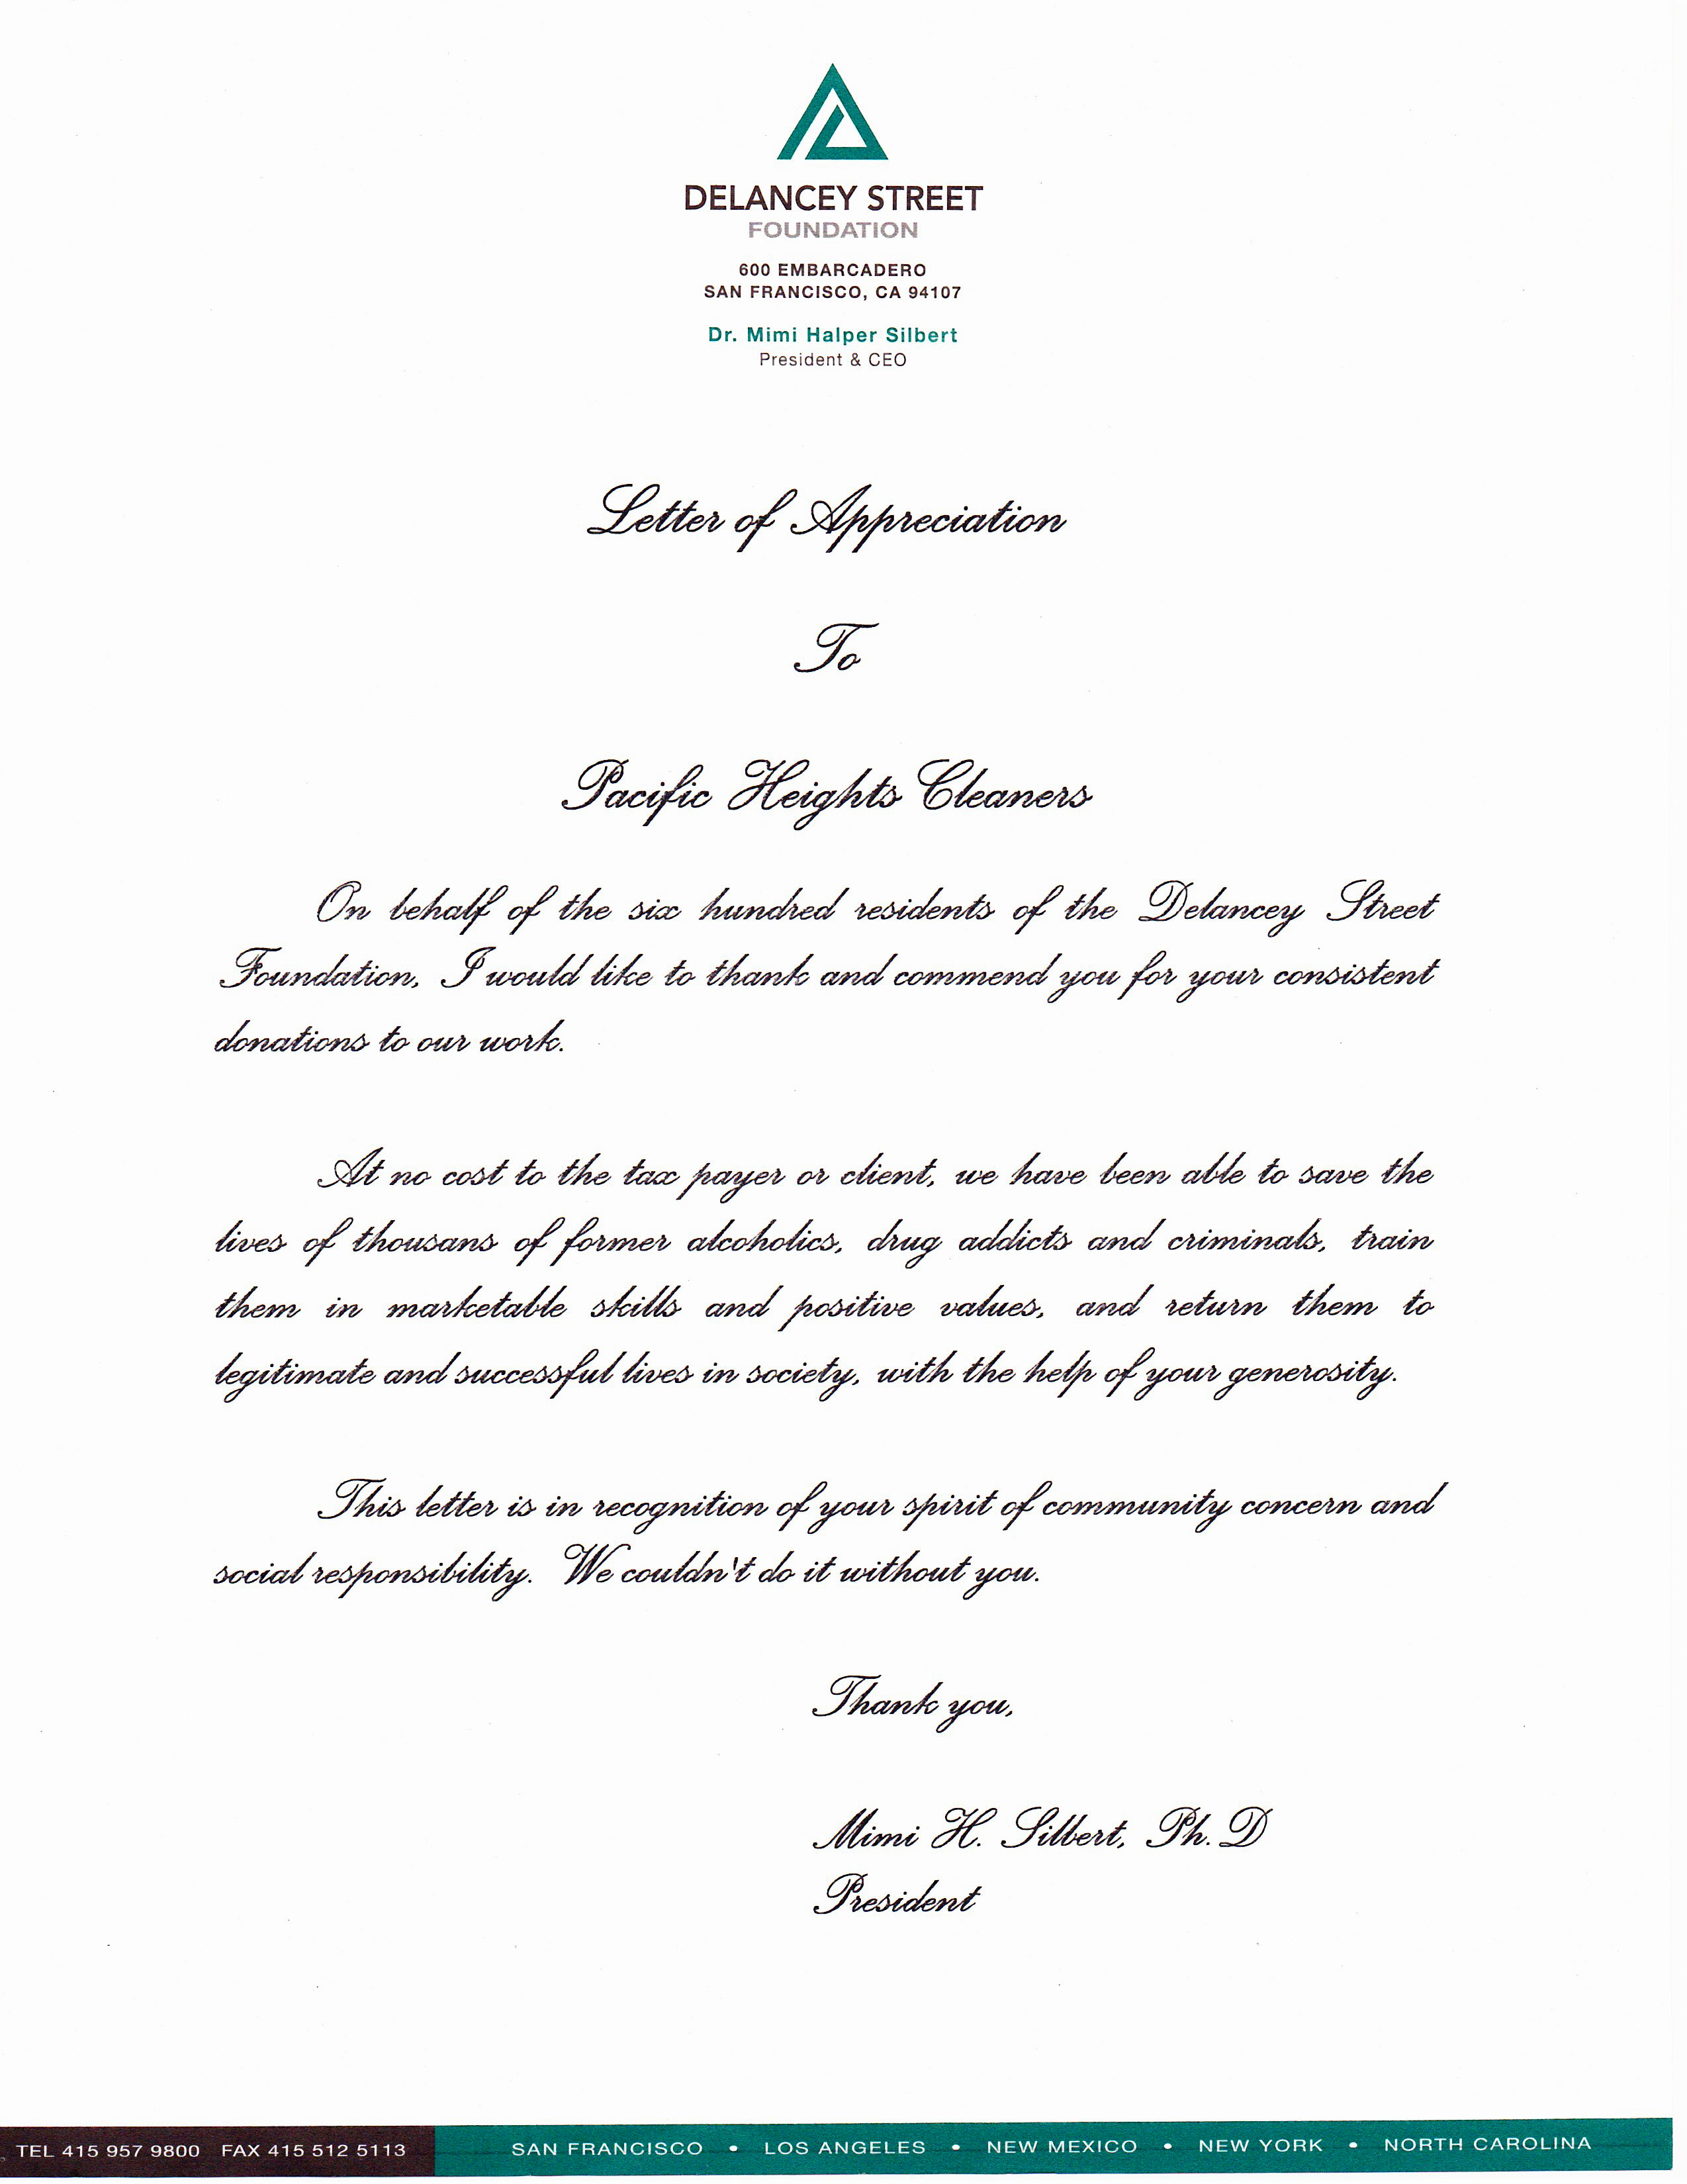 letter of appreciation from the delancy street foundation we